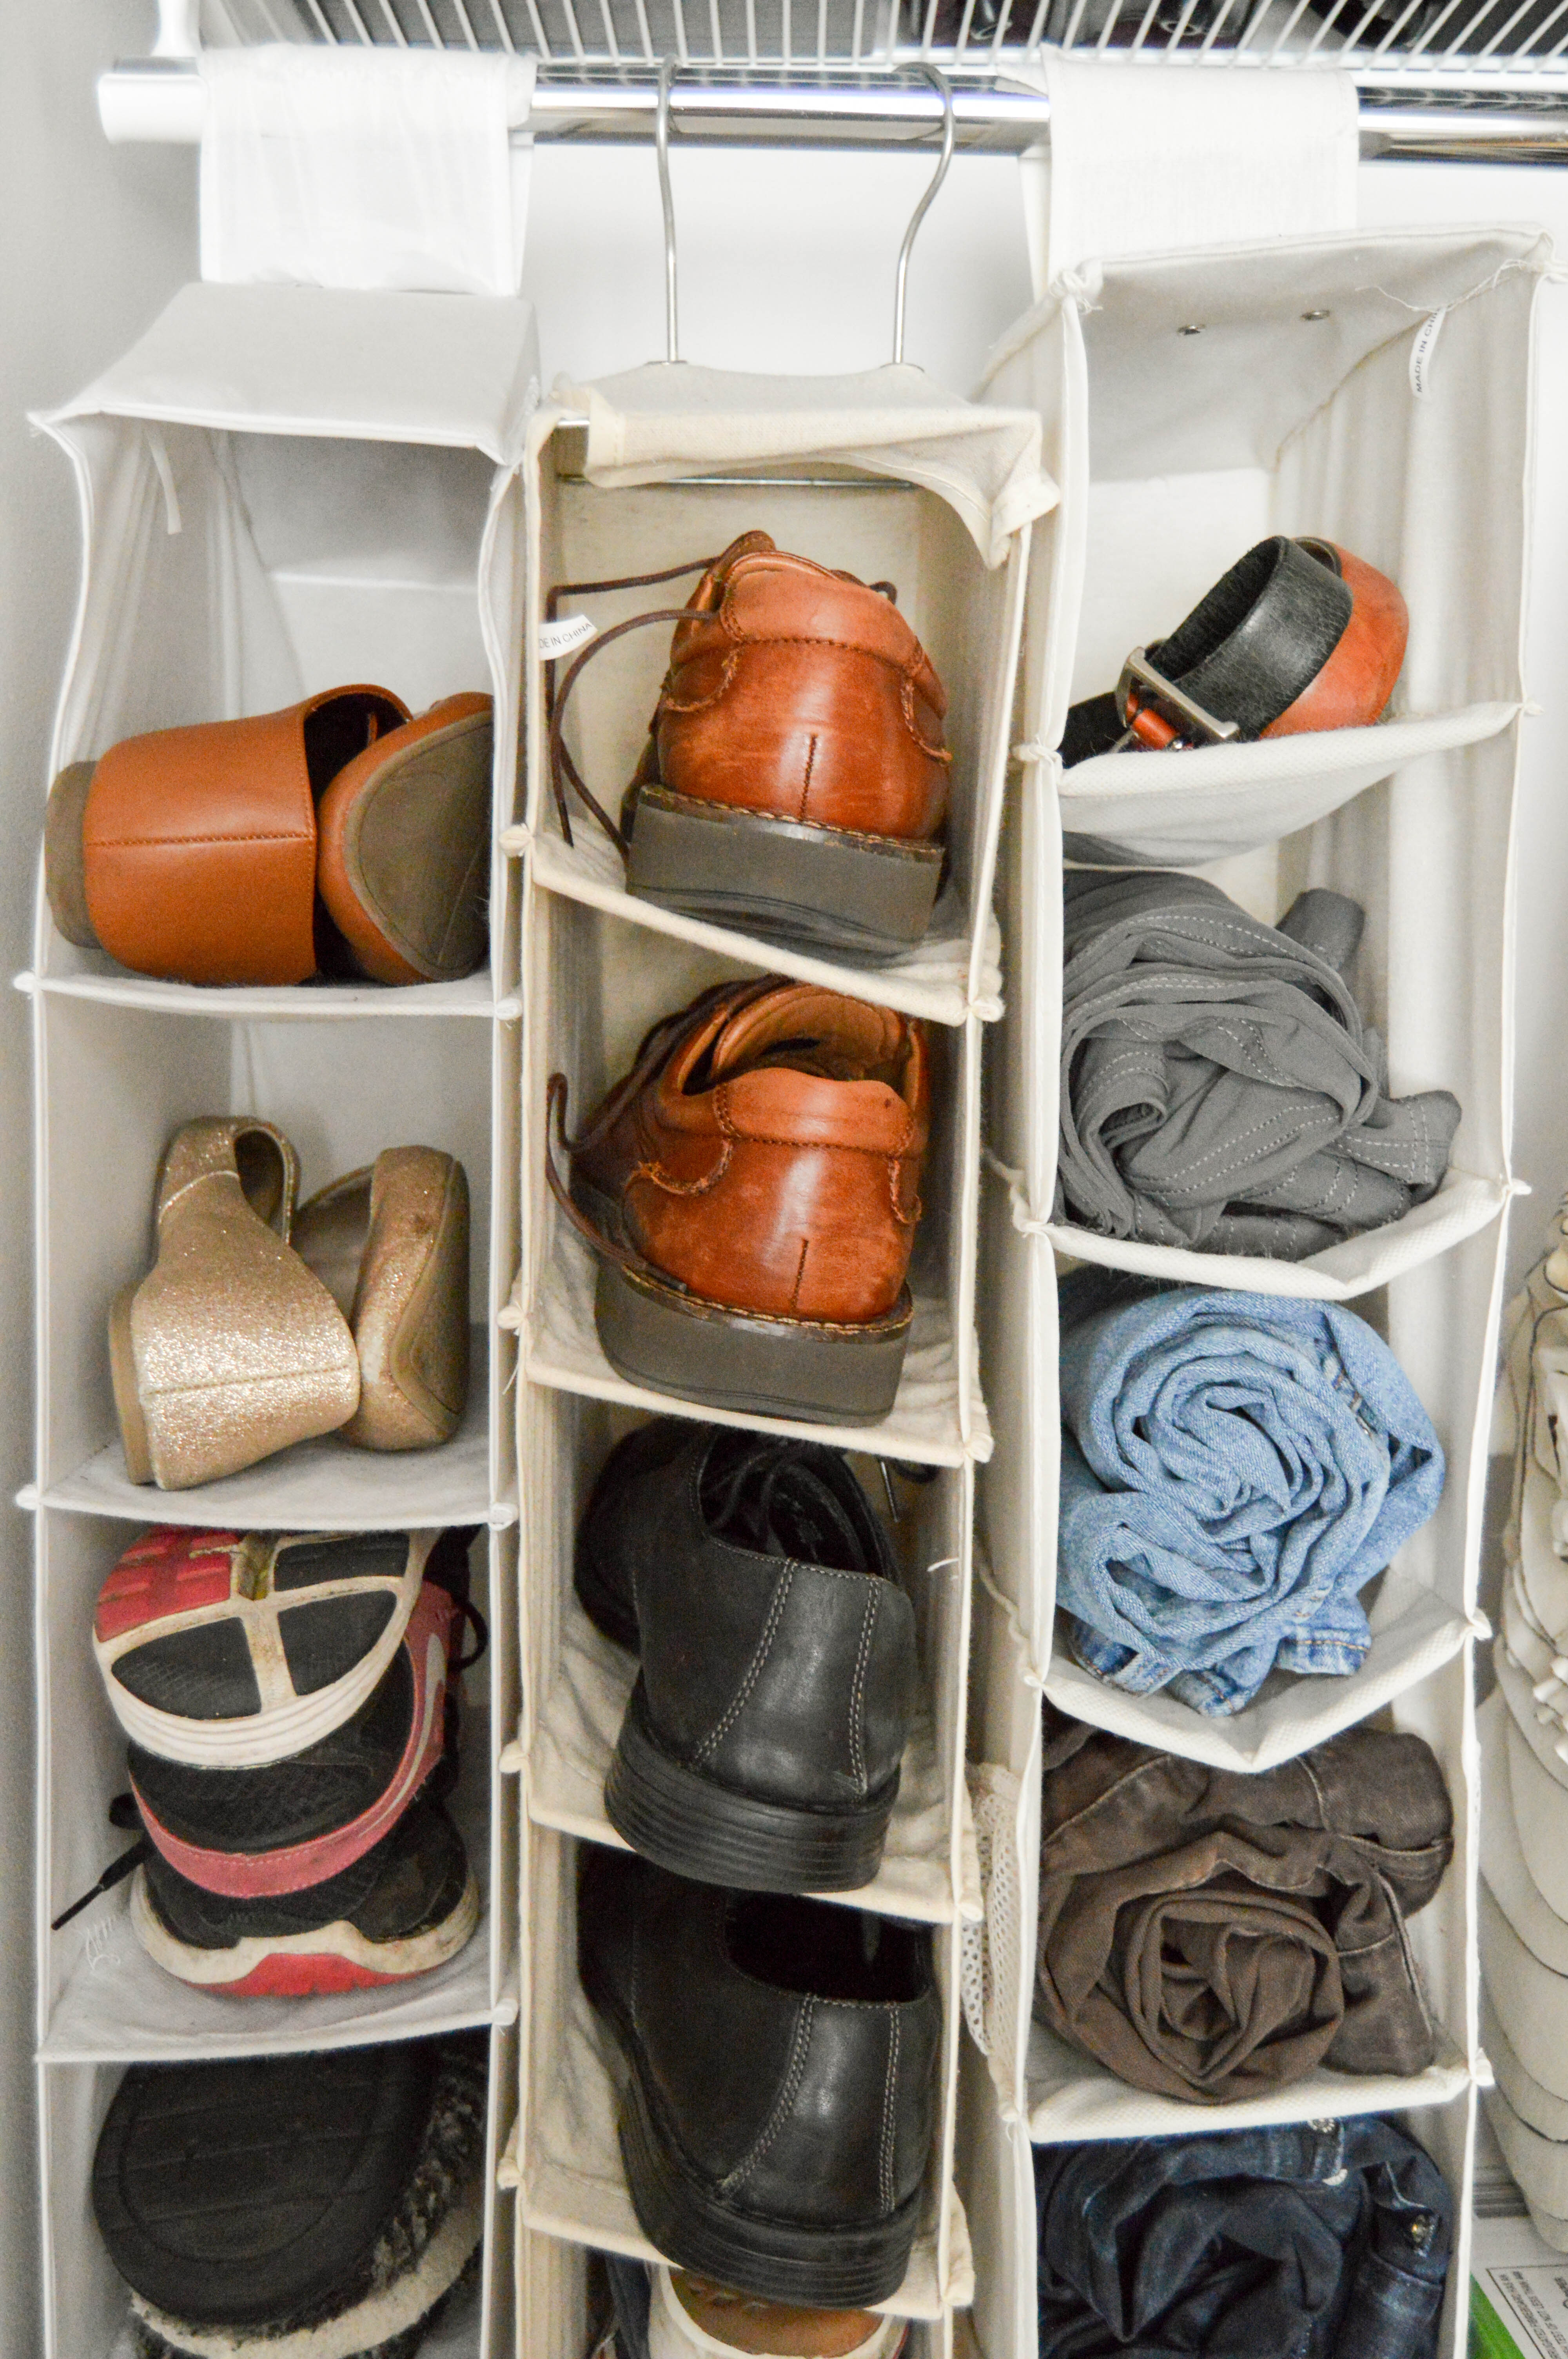 Tips for how to purge and organize your home like a pro. Organizing steps: categorizing and finding homes for things. 5 home organizing rules to live by. Shoe organizer hack